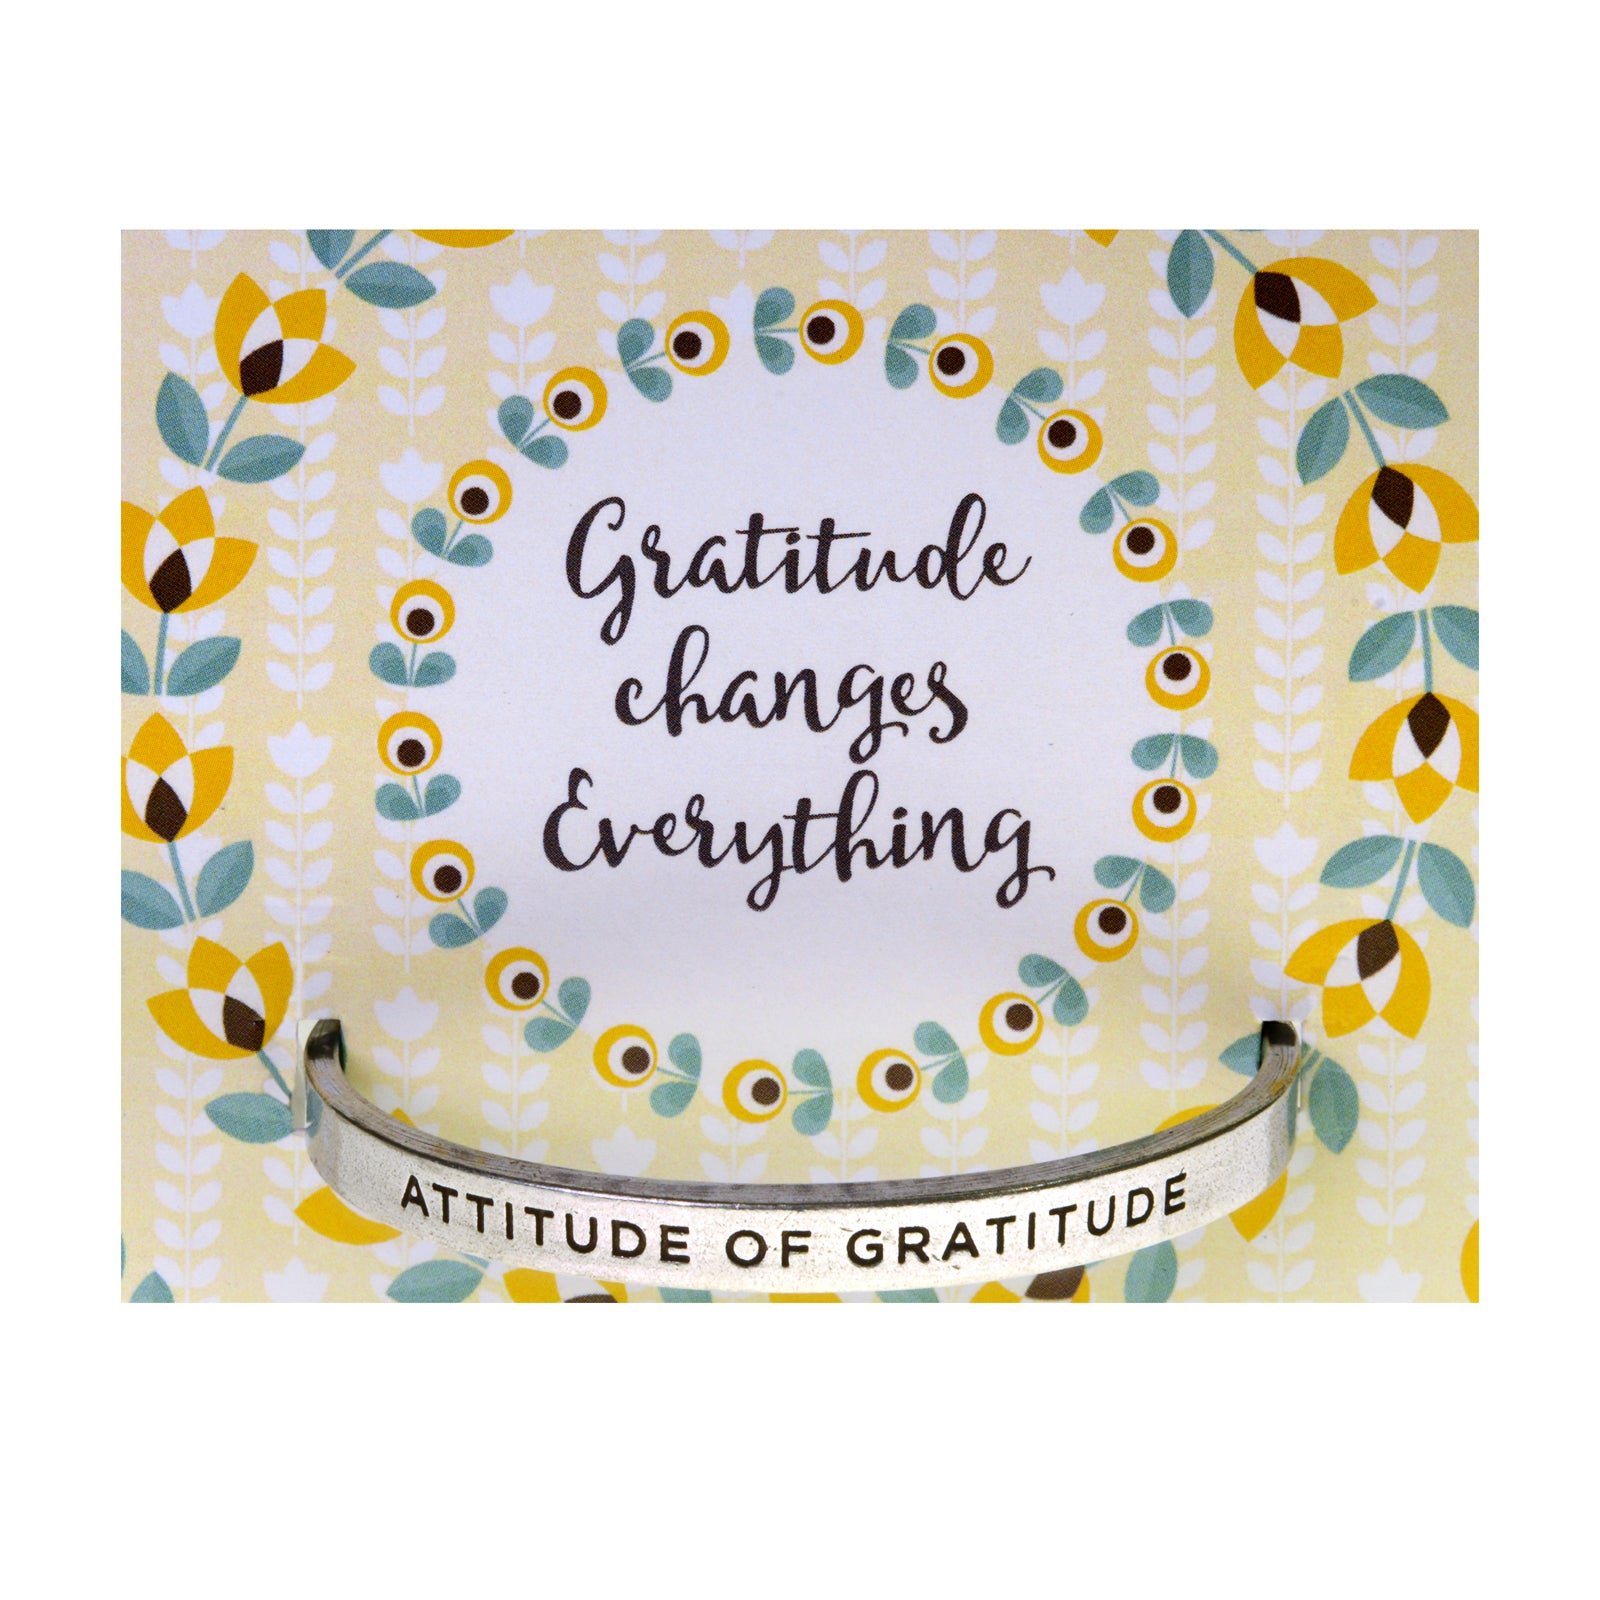 Attitude of Gratitude Quotable Cuff Bracelet - Whitney Howard Designs